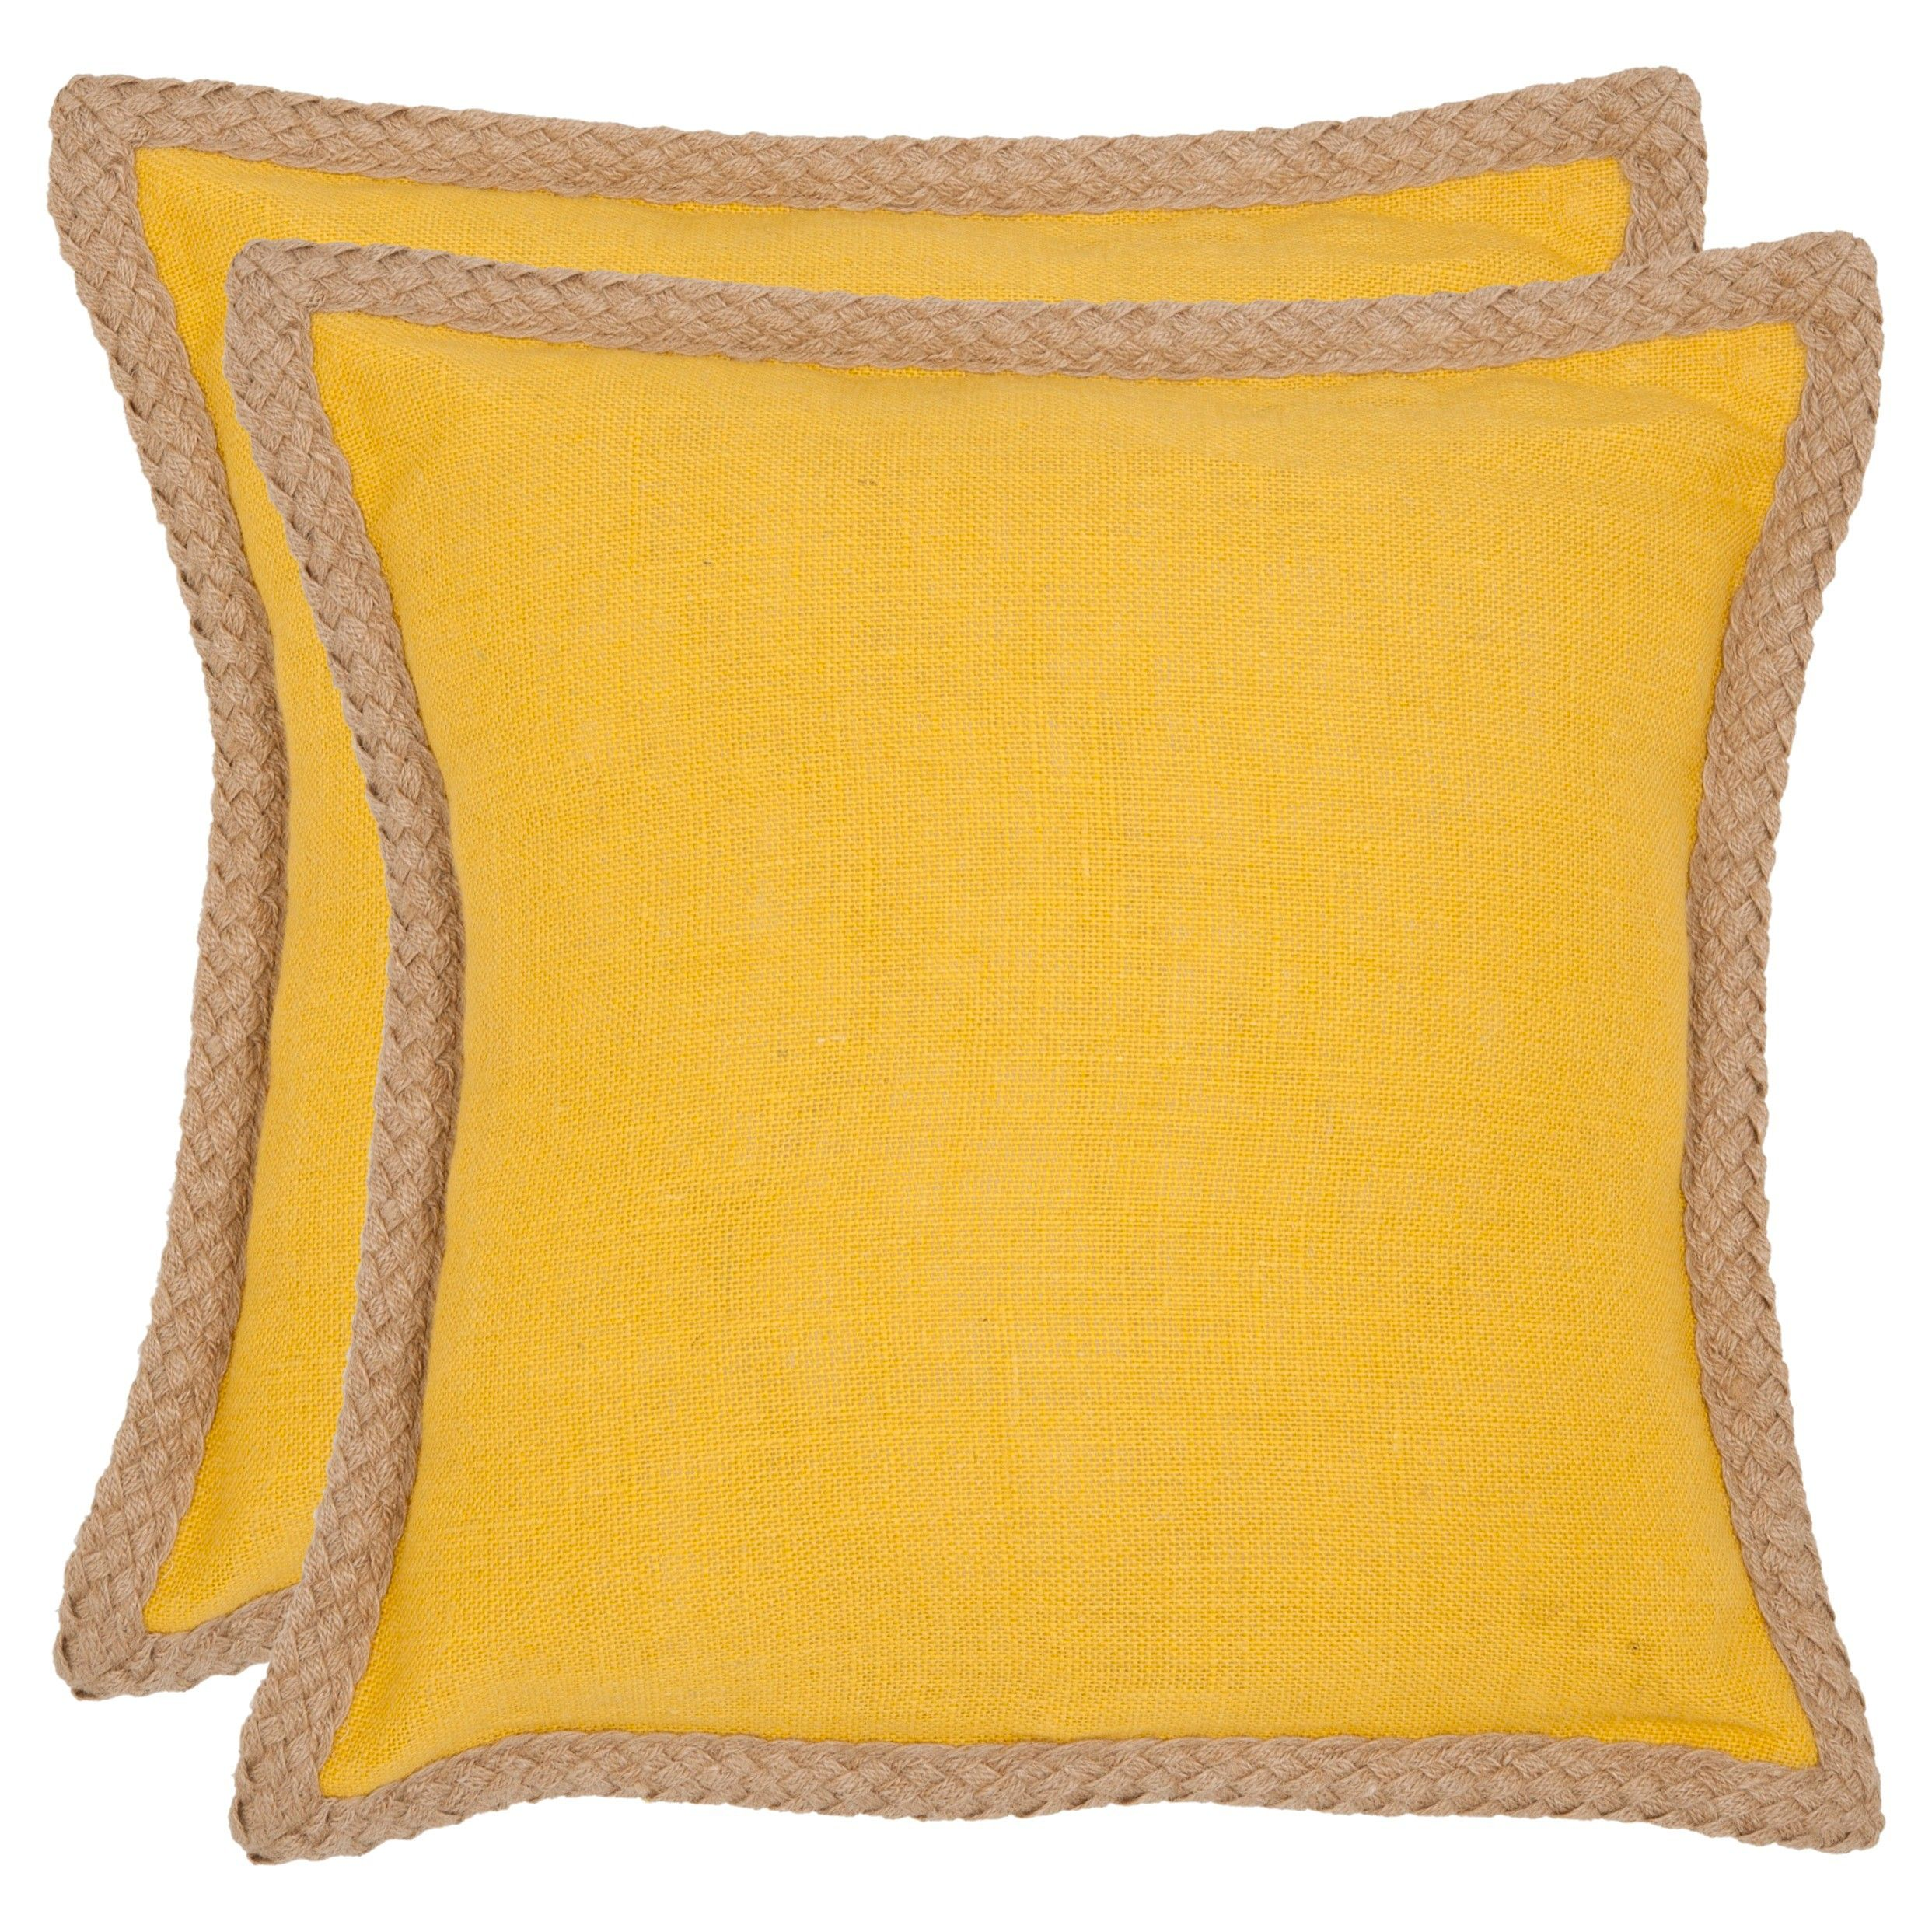 sweet sorona pillow steps off the runway and into the home with a stunning solid color accent pillow in golden yellow fabric contrasted with - Toss Pillows